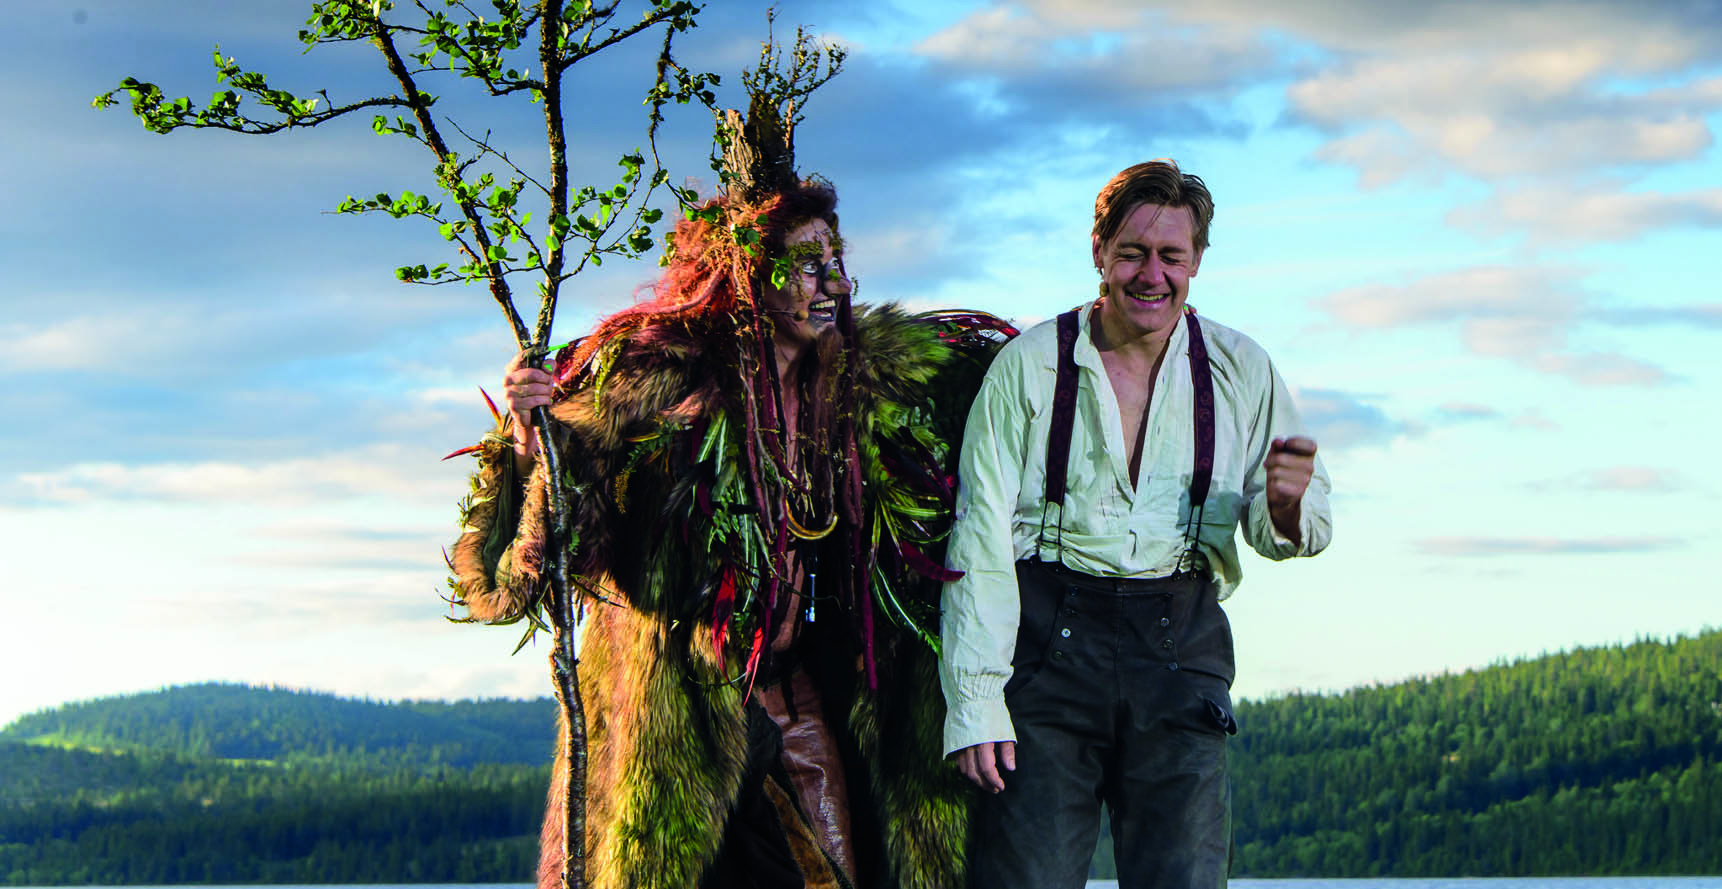 Trolls in the Peer Gynt Play